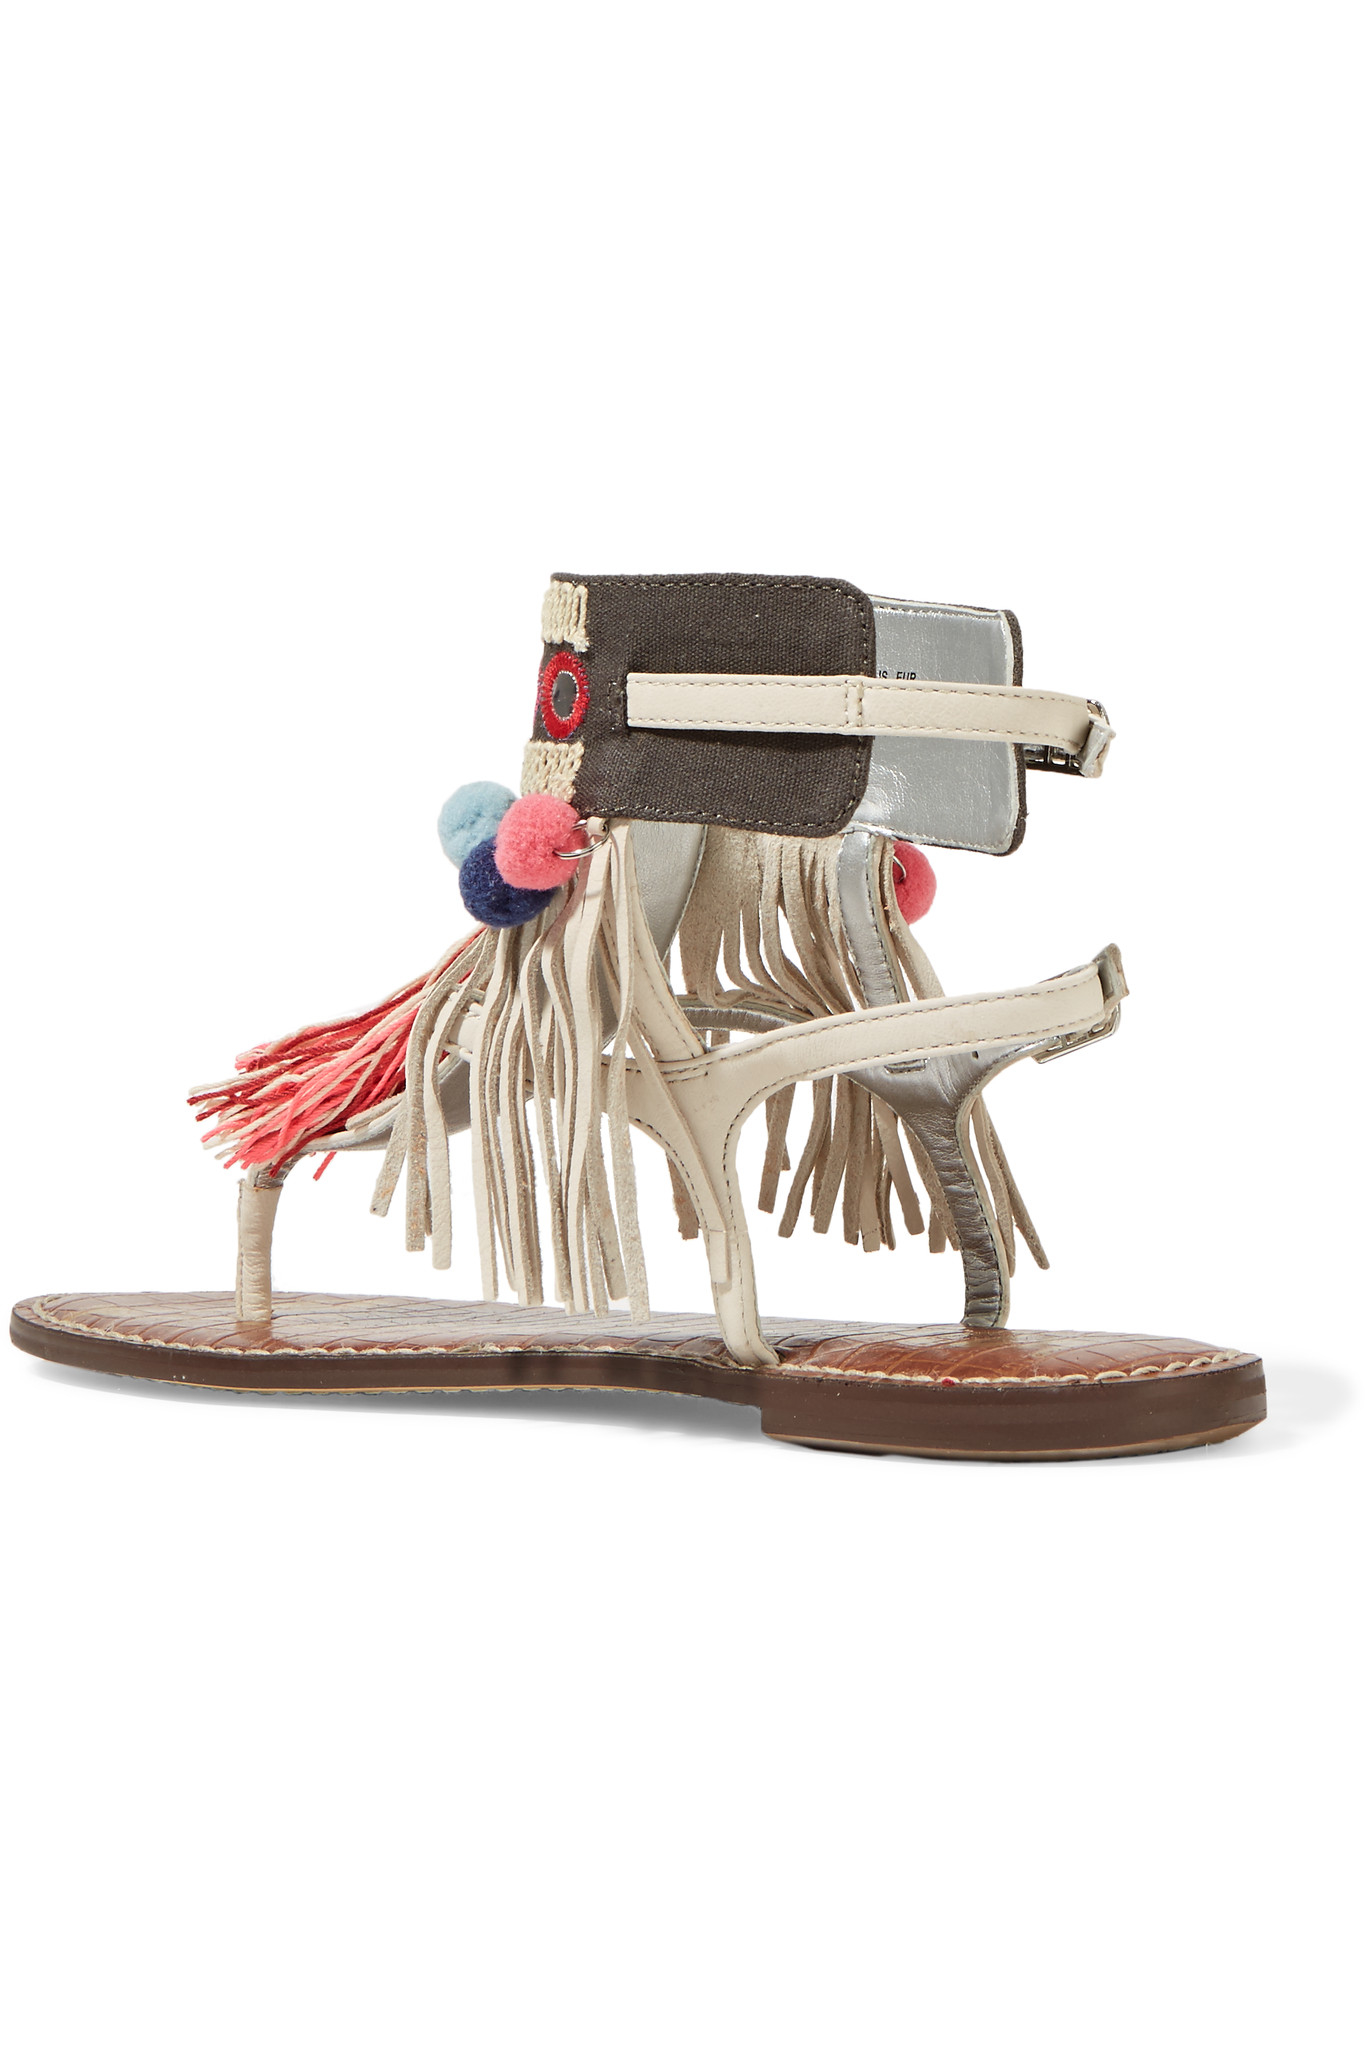 57e61b12f5c0 Lyst - Sam Edelman Gere Fringe-trimmed Leather Sandals in White